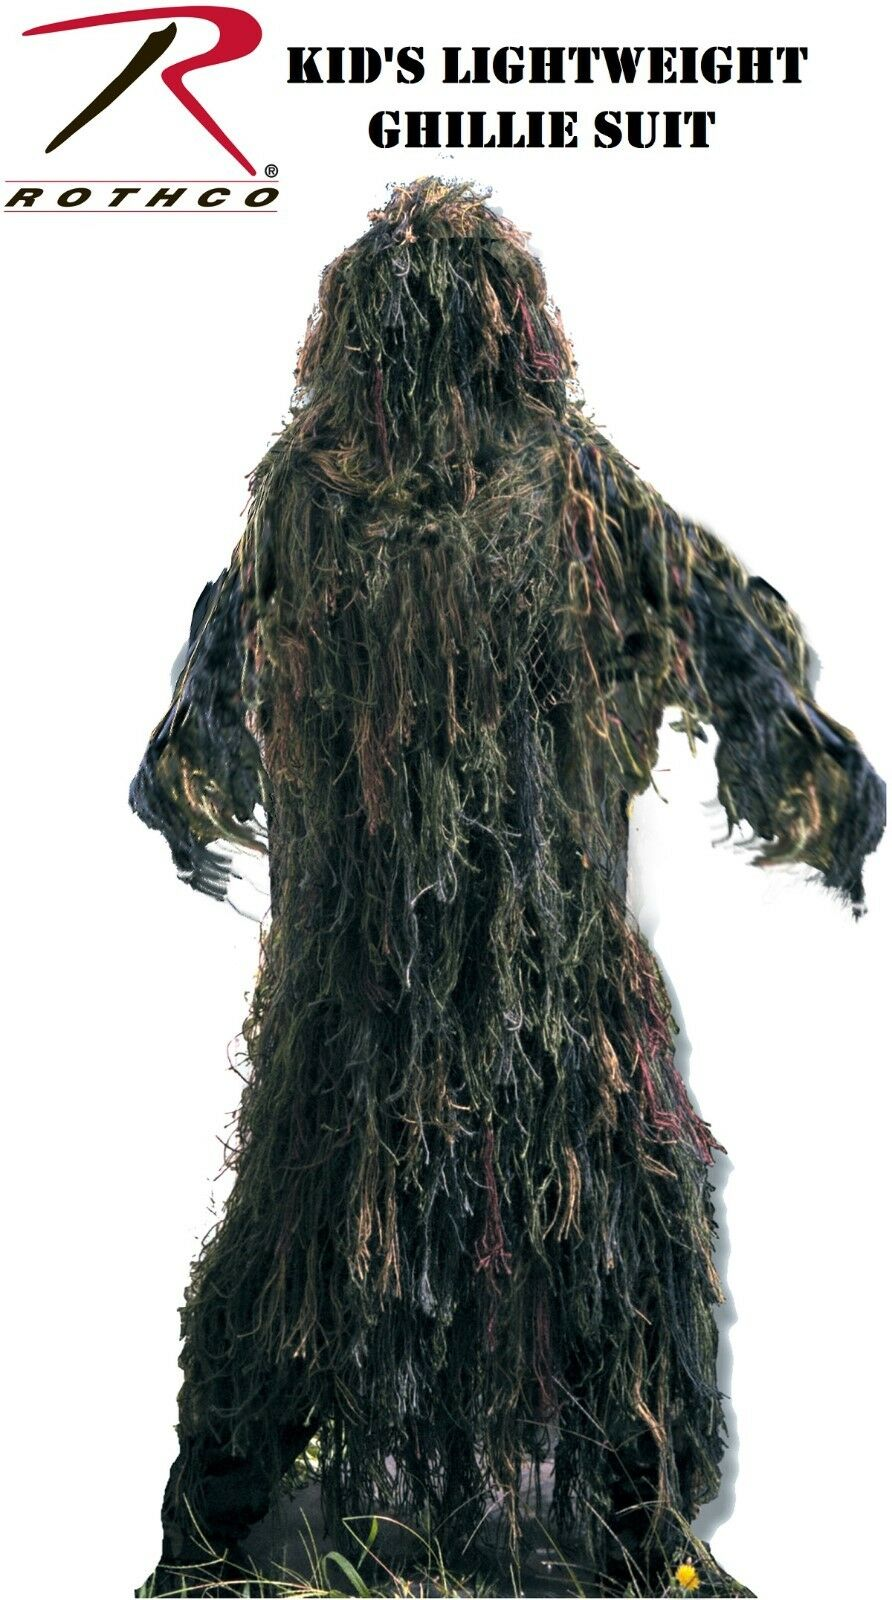 Army kid's ghillie suit youth sizes kids lightweight all purpose  64128 redhco  the best online store offer